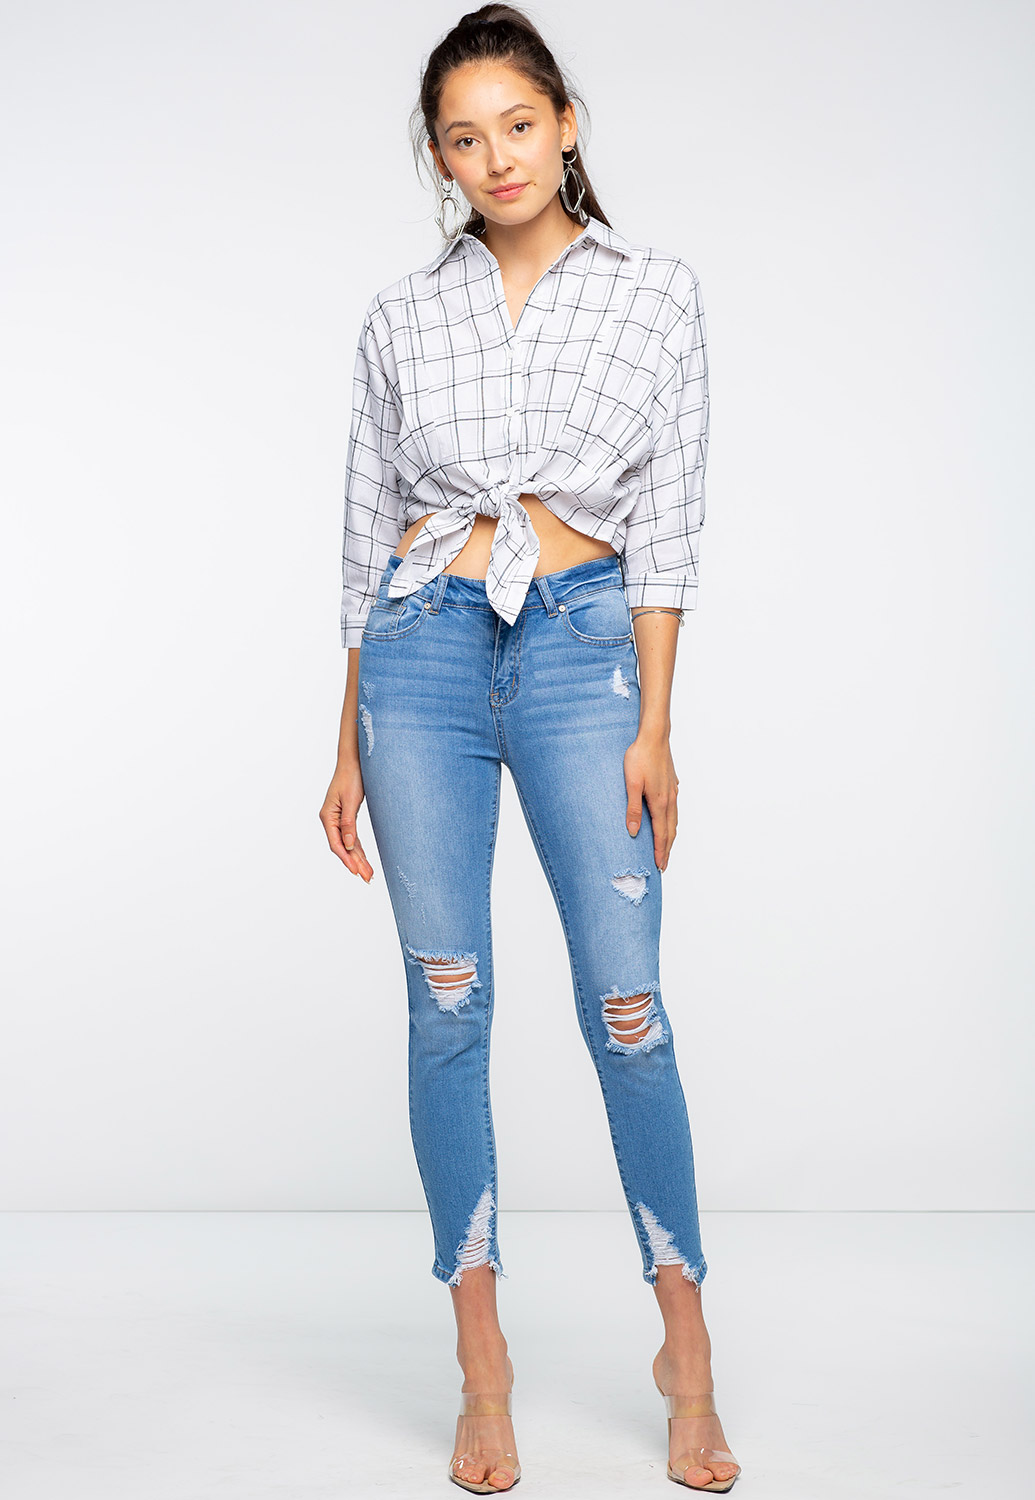 Plaidl Printed Dressy Front Tie Top